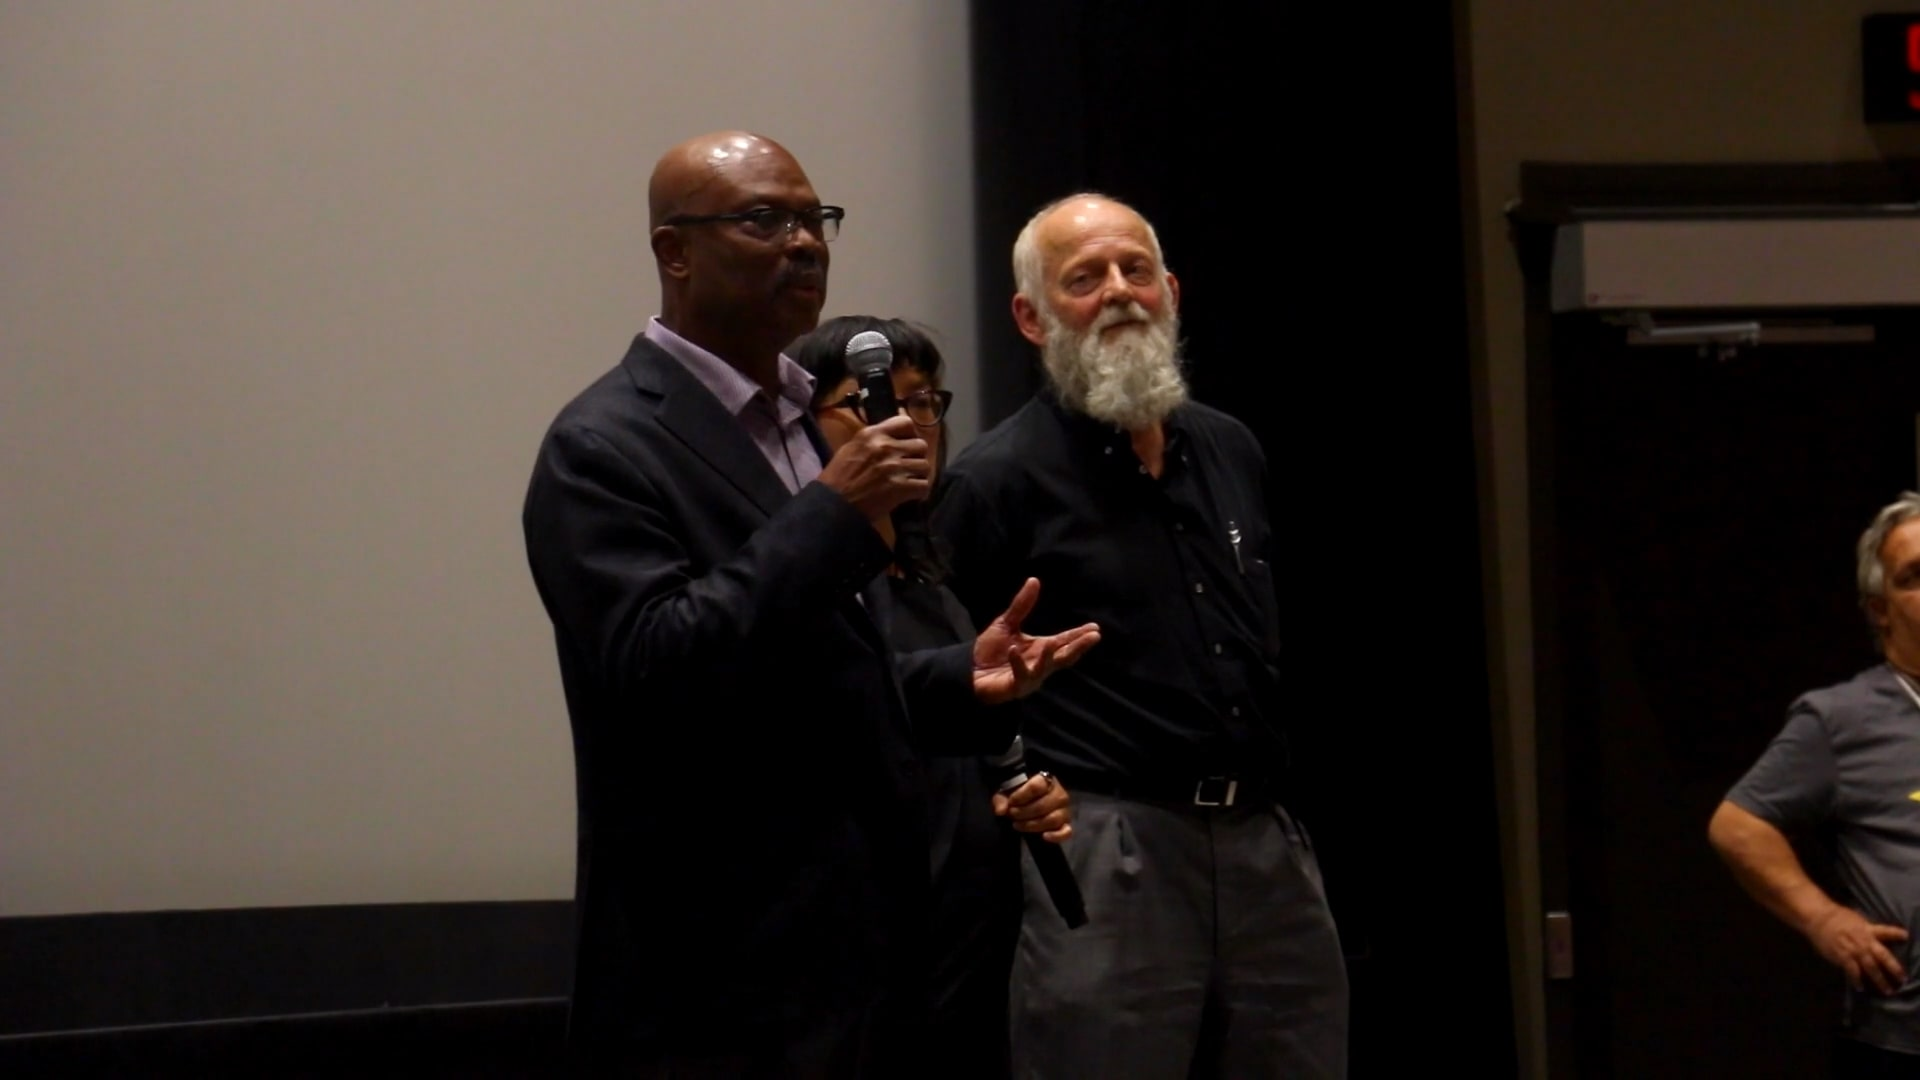 Still from Q&A with writer & director Mina Shum and producer Selwyn Jacob - NINTH FLOOR